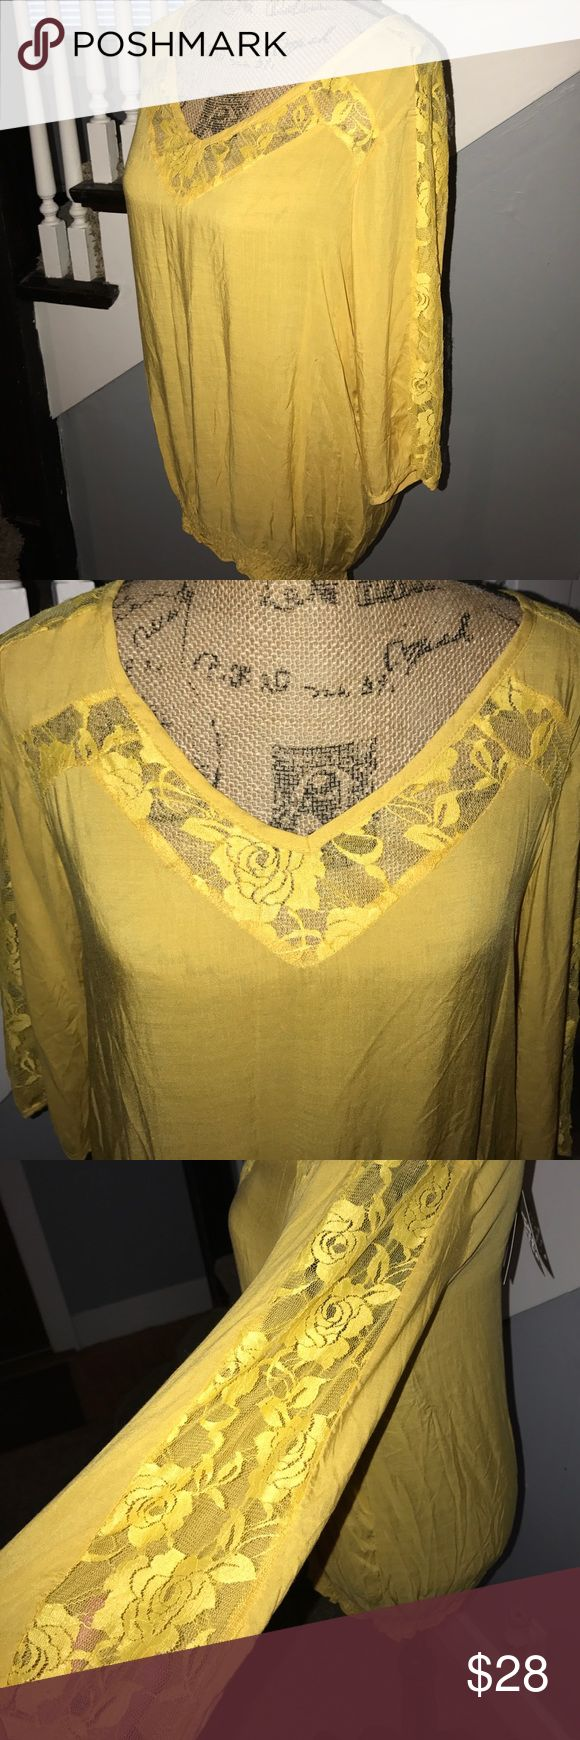 "NWT 3/4 sleeve Lace detail Peasant Top Yellow NWT boutique top in a mustardy yellow. Lace detail, elastic waist v-neck. The perfect lightweight top for your wardrobe! 36"" chest laid flat  approx 18"" armpit to bottom. I have tons of fun items to list so please check out my other items and save 💰on bundles! I do 20% bundle discounts! I ❤️ Offers and typically ship same day! urban mango Tops"